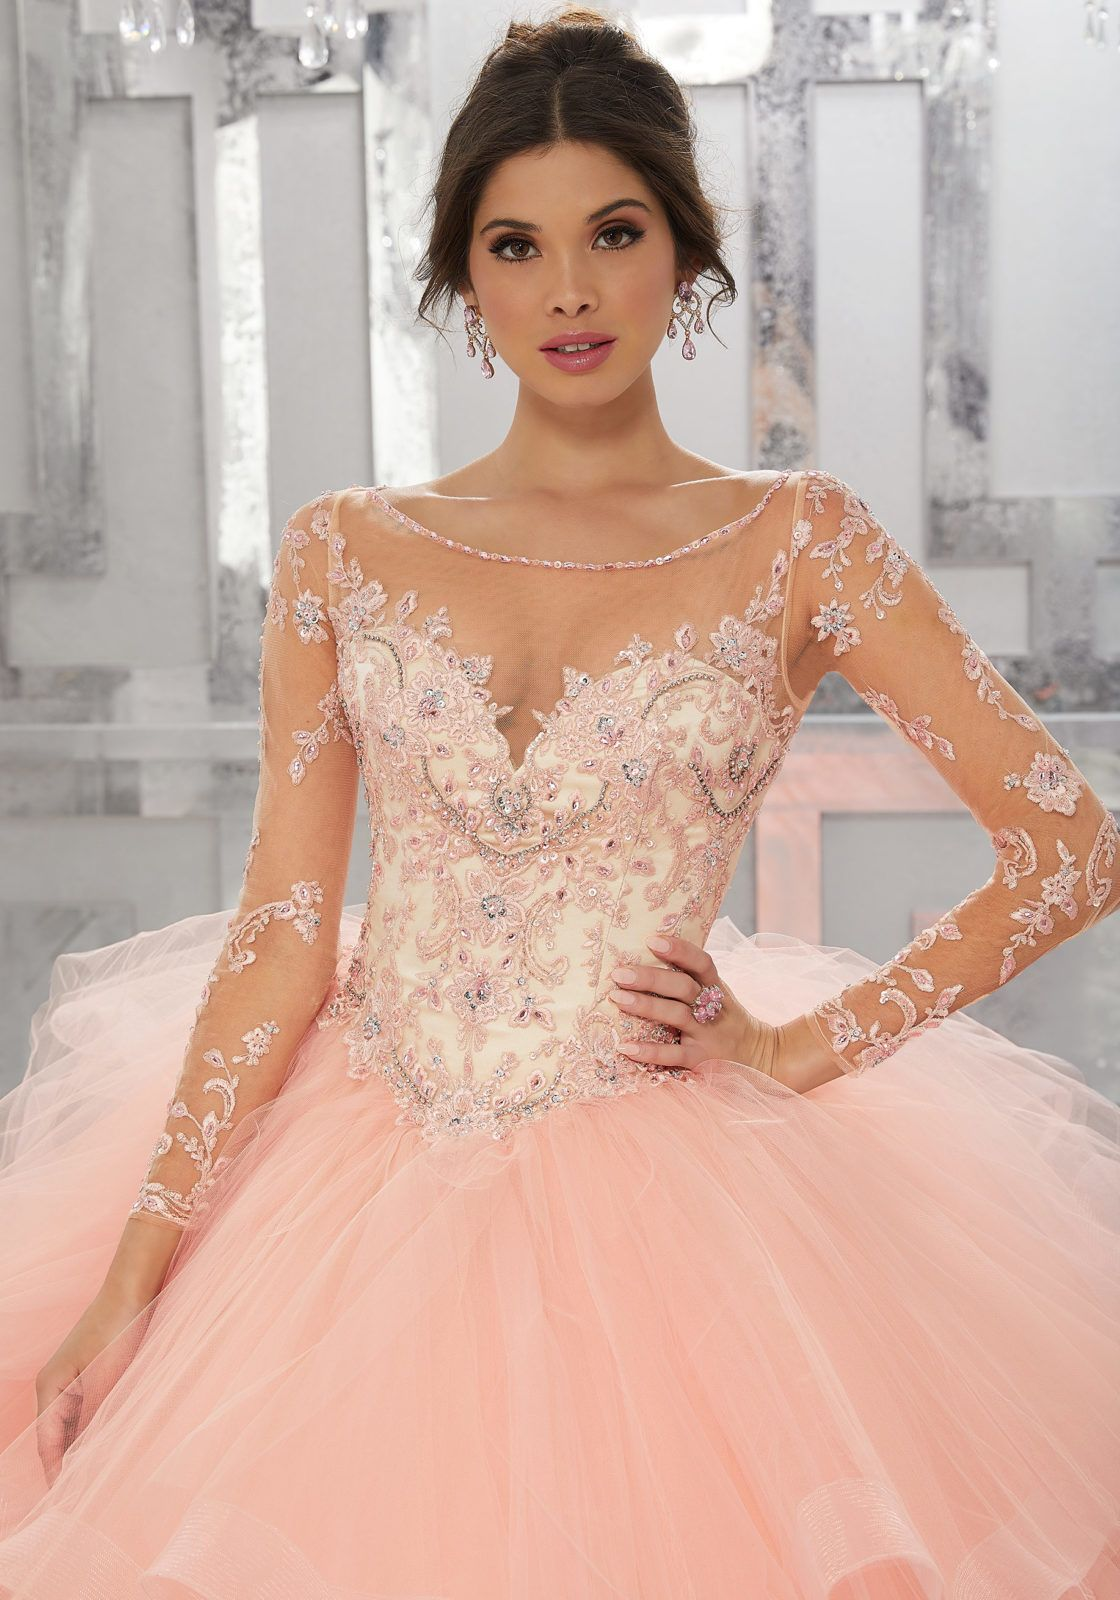 87f2cfeac Beaded Embroidery on Net with Flounced Tulle Ball Gown Skirt Organza  Bordada